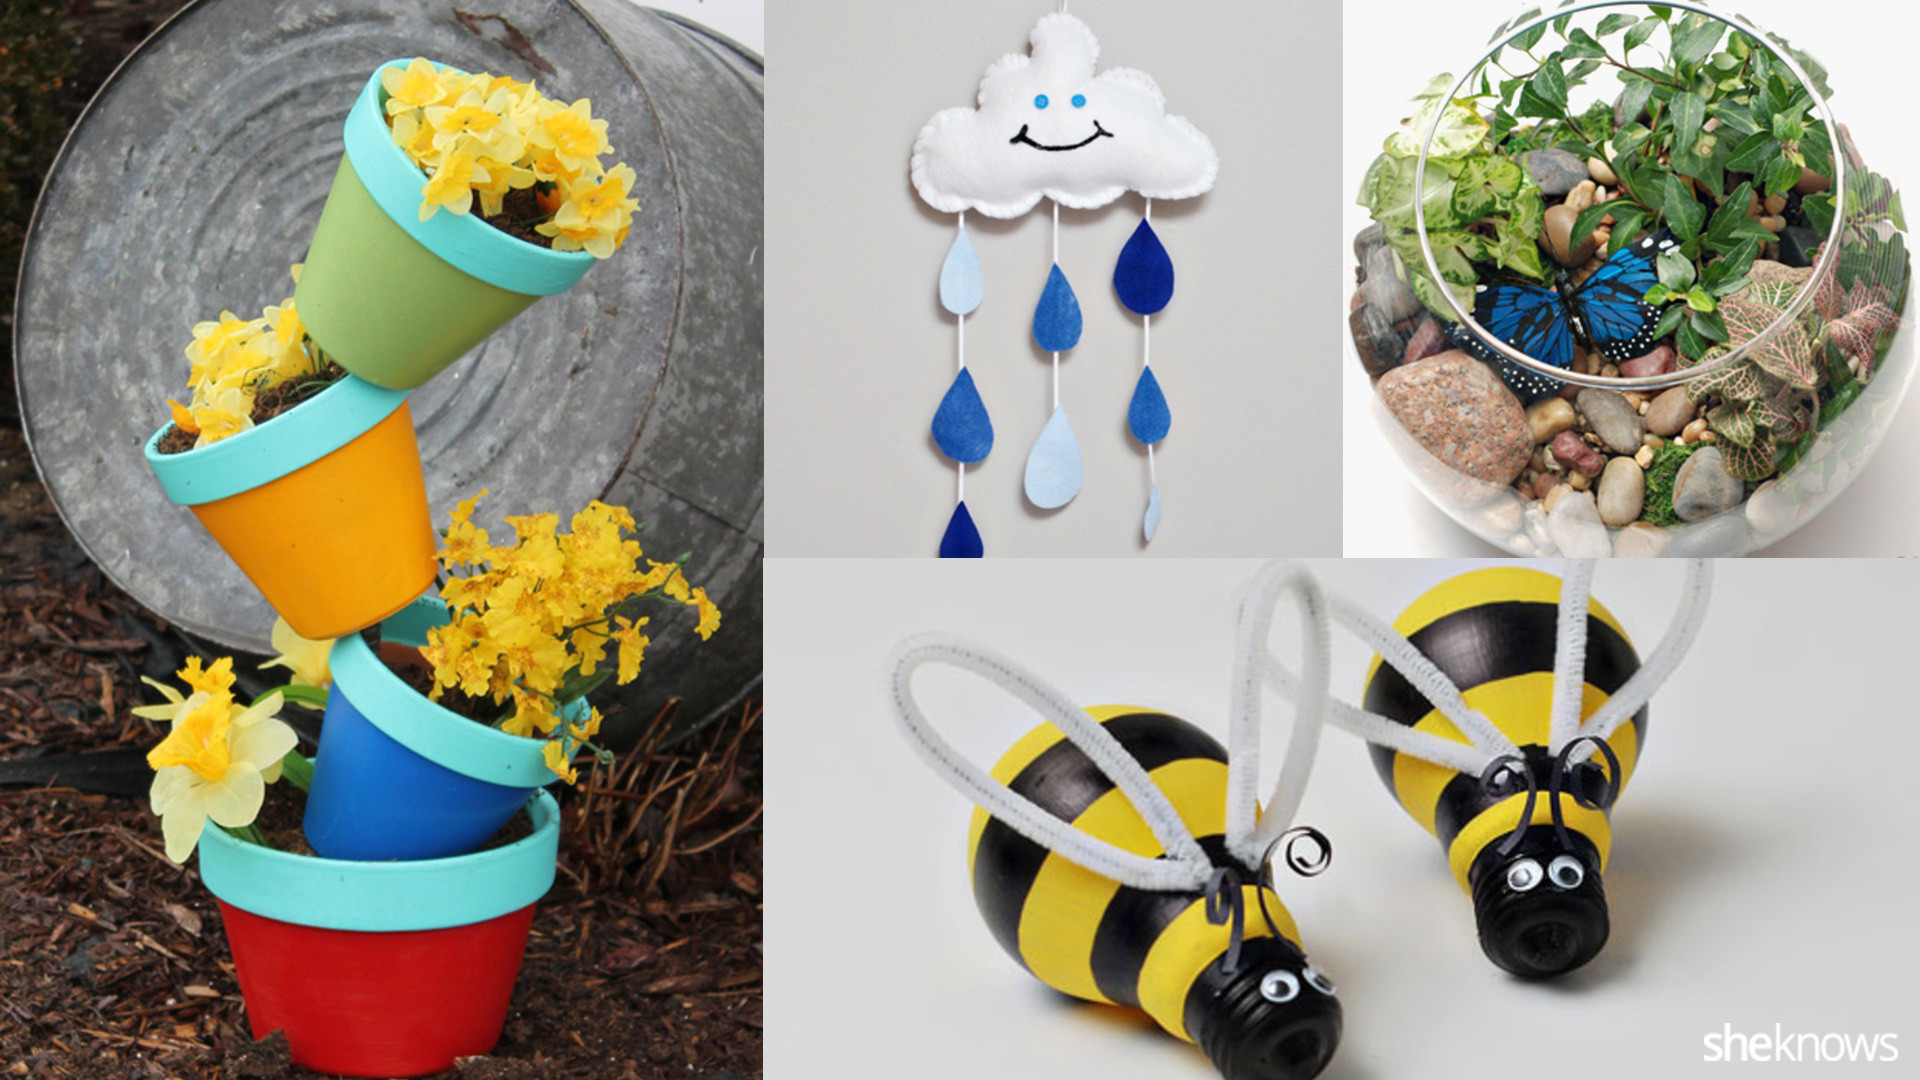 Best ideas about Summertime Craft Ideas For Kids . Save or Pin If your kids are crafty they re going to have a blast Now.